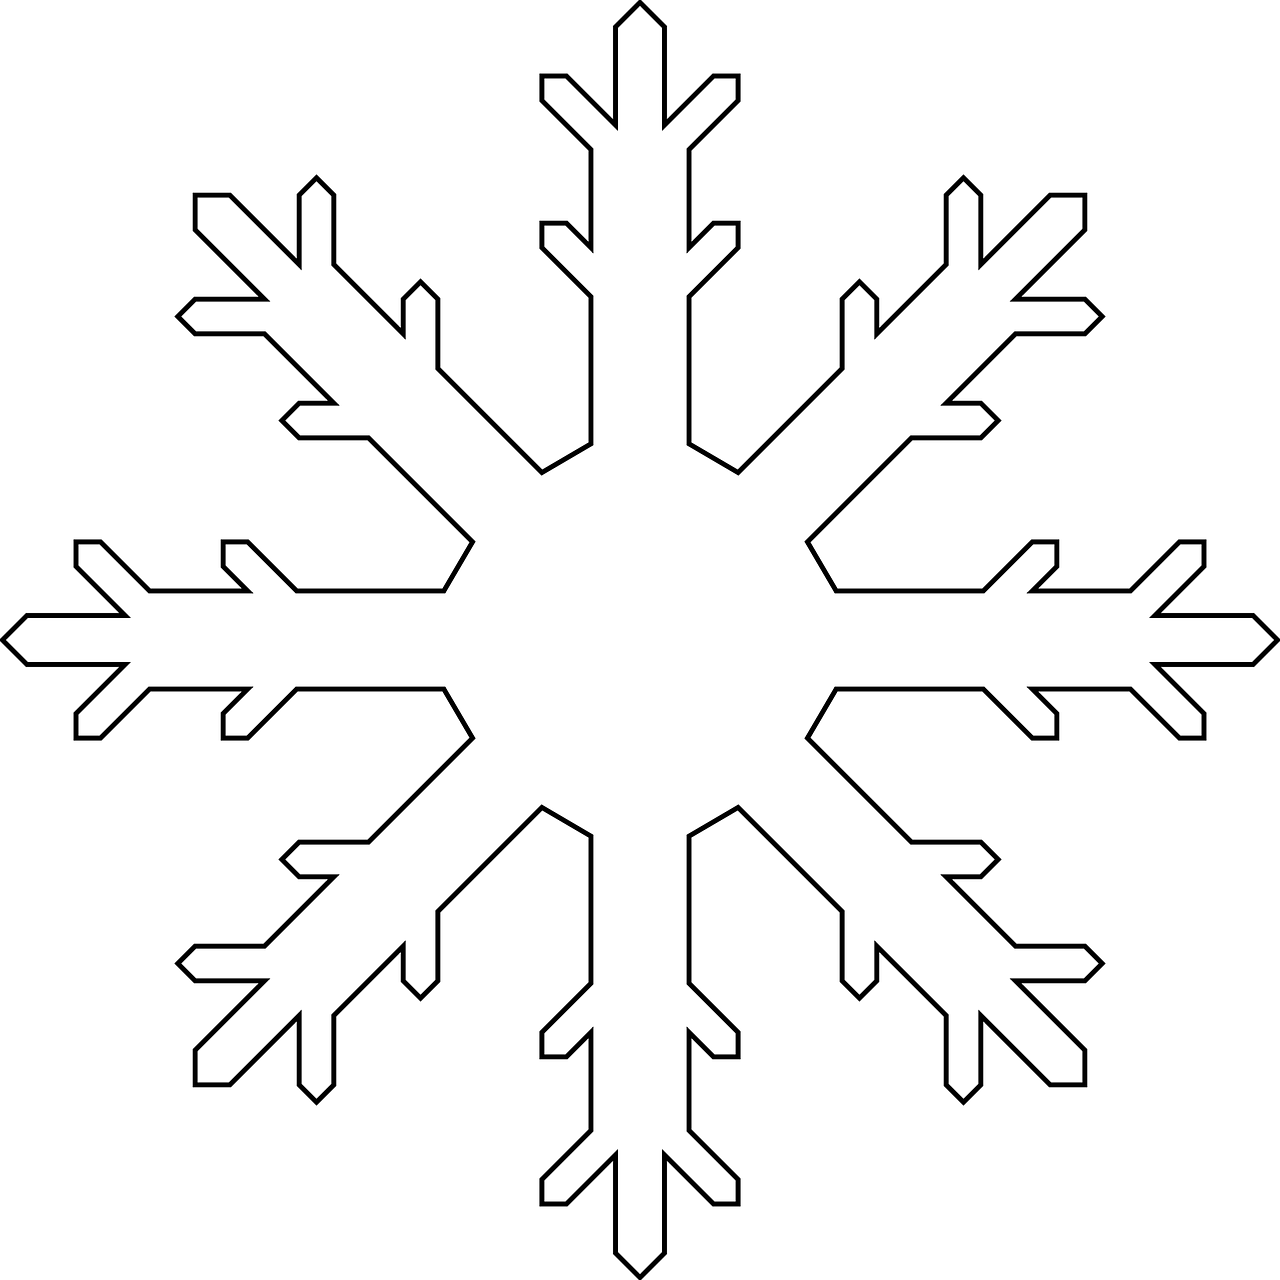 coloring book snowflake snowflake coloring page free download on clipartmag coloring snowflake book